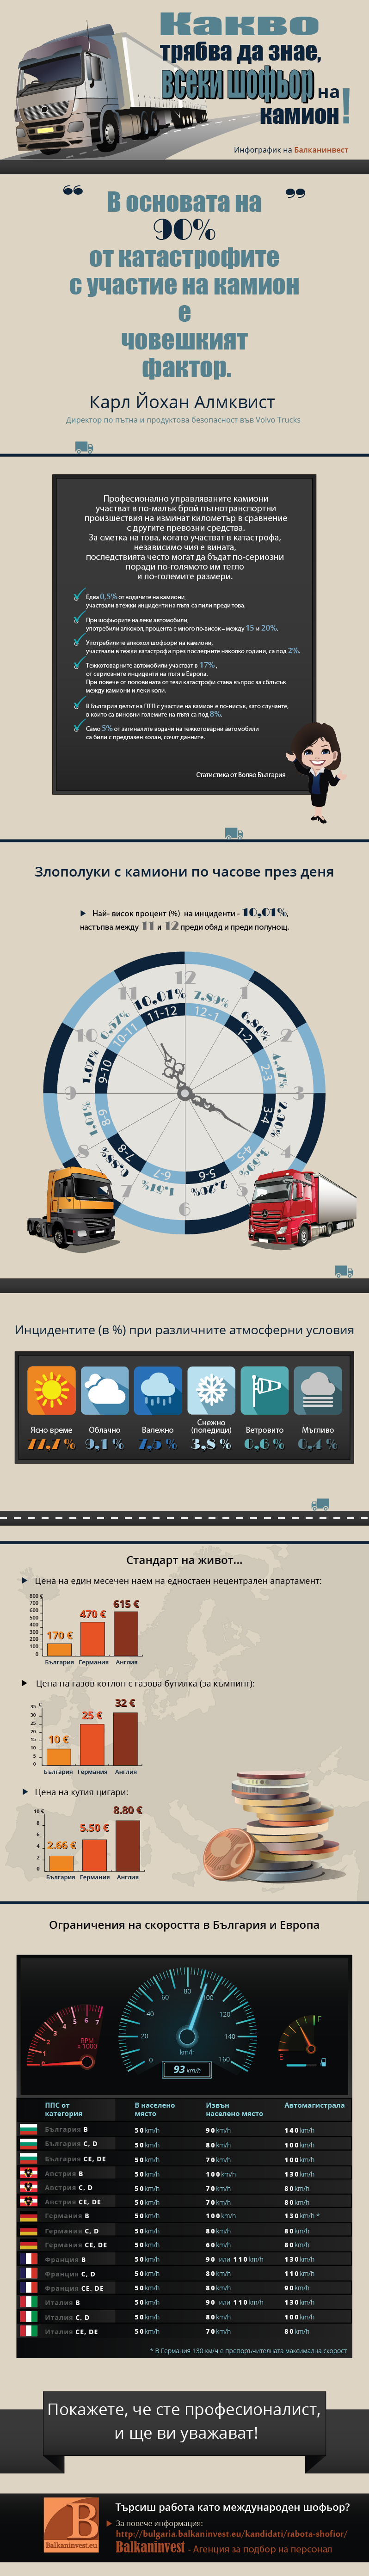 Infographic Truck drivers